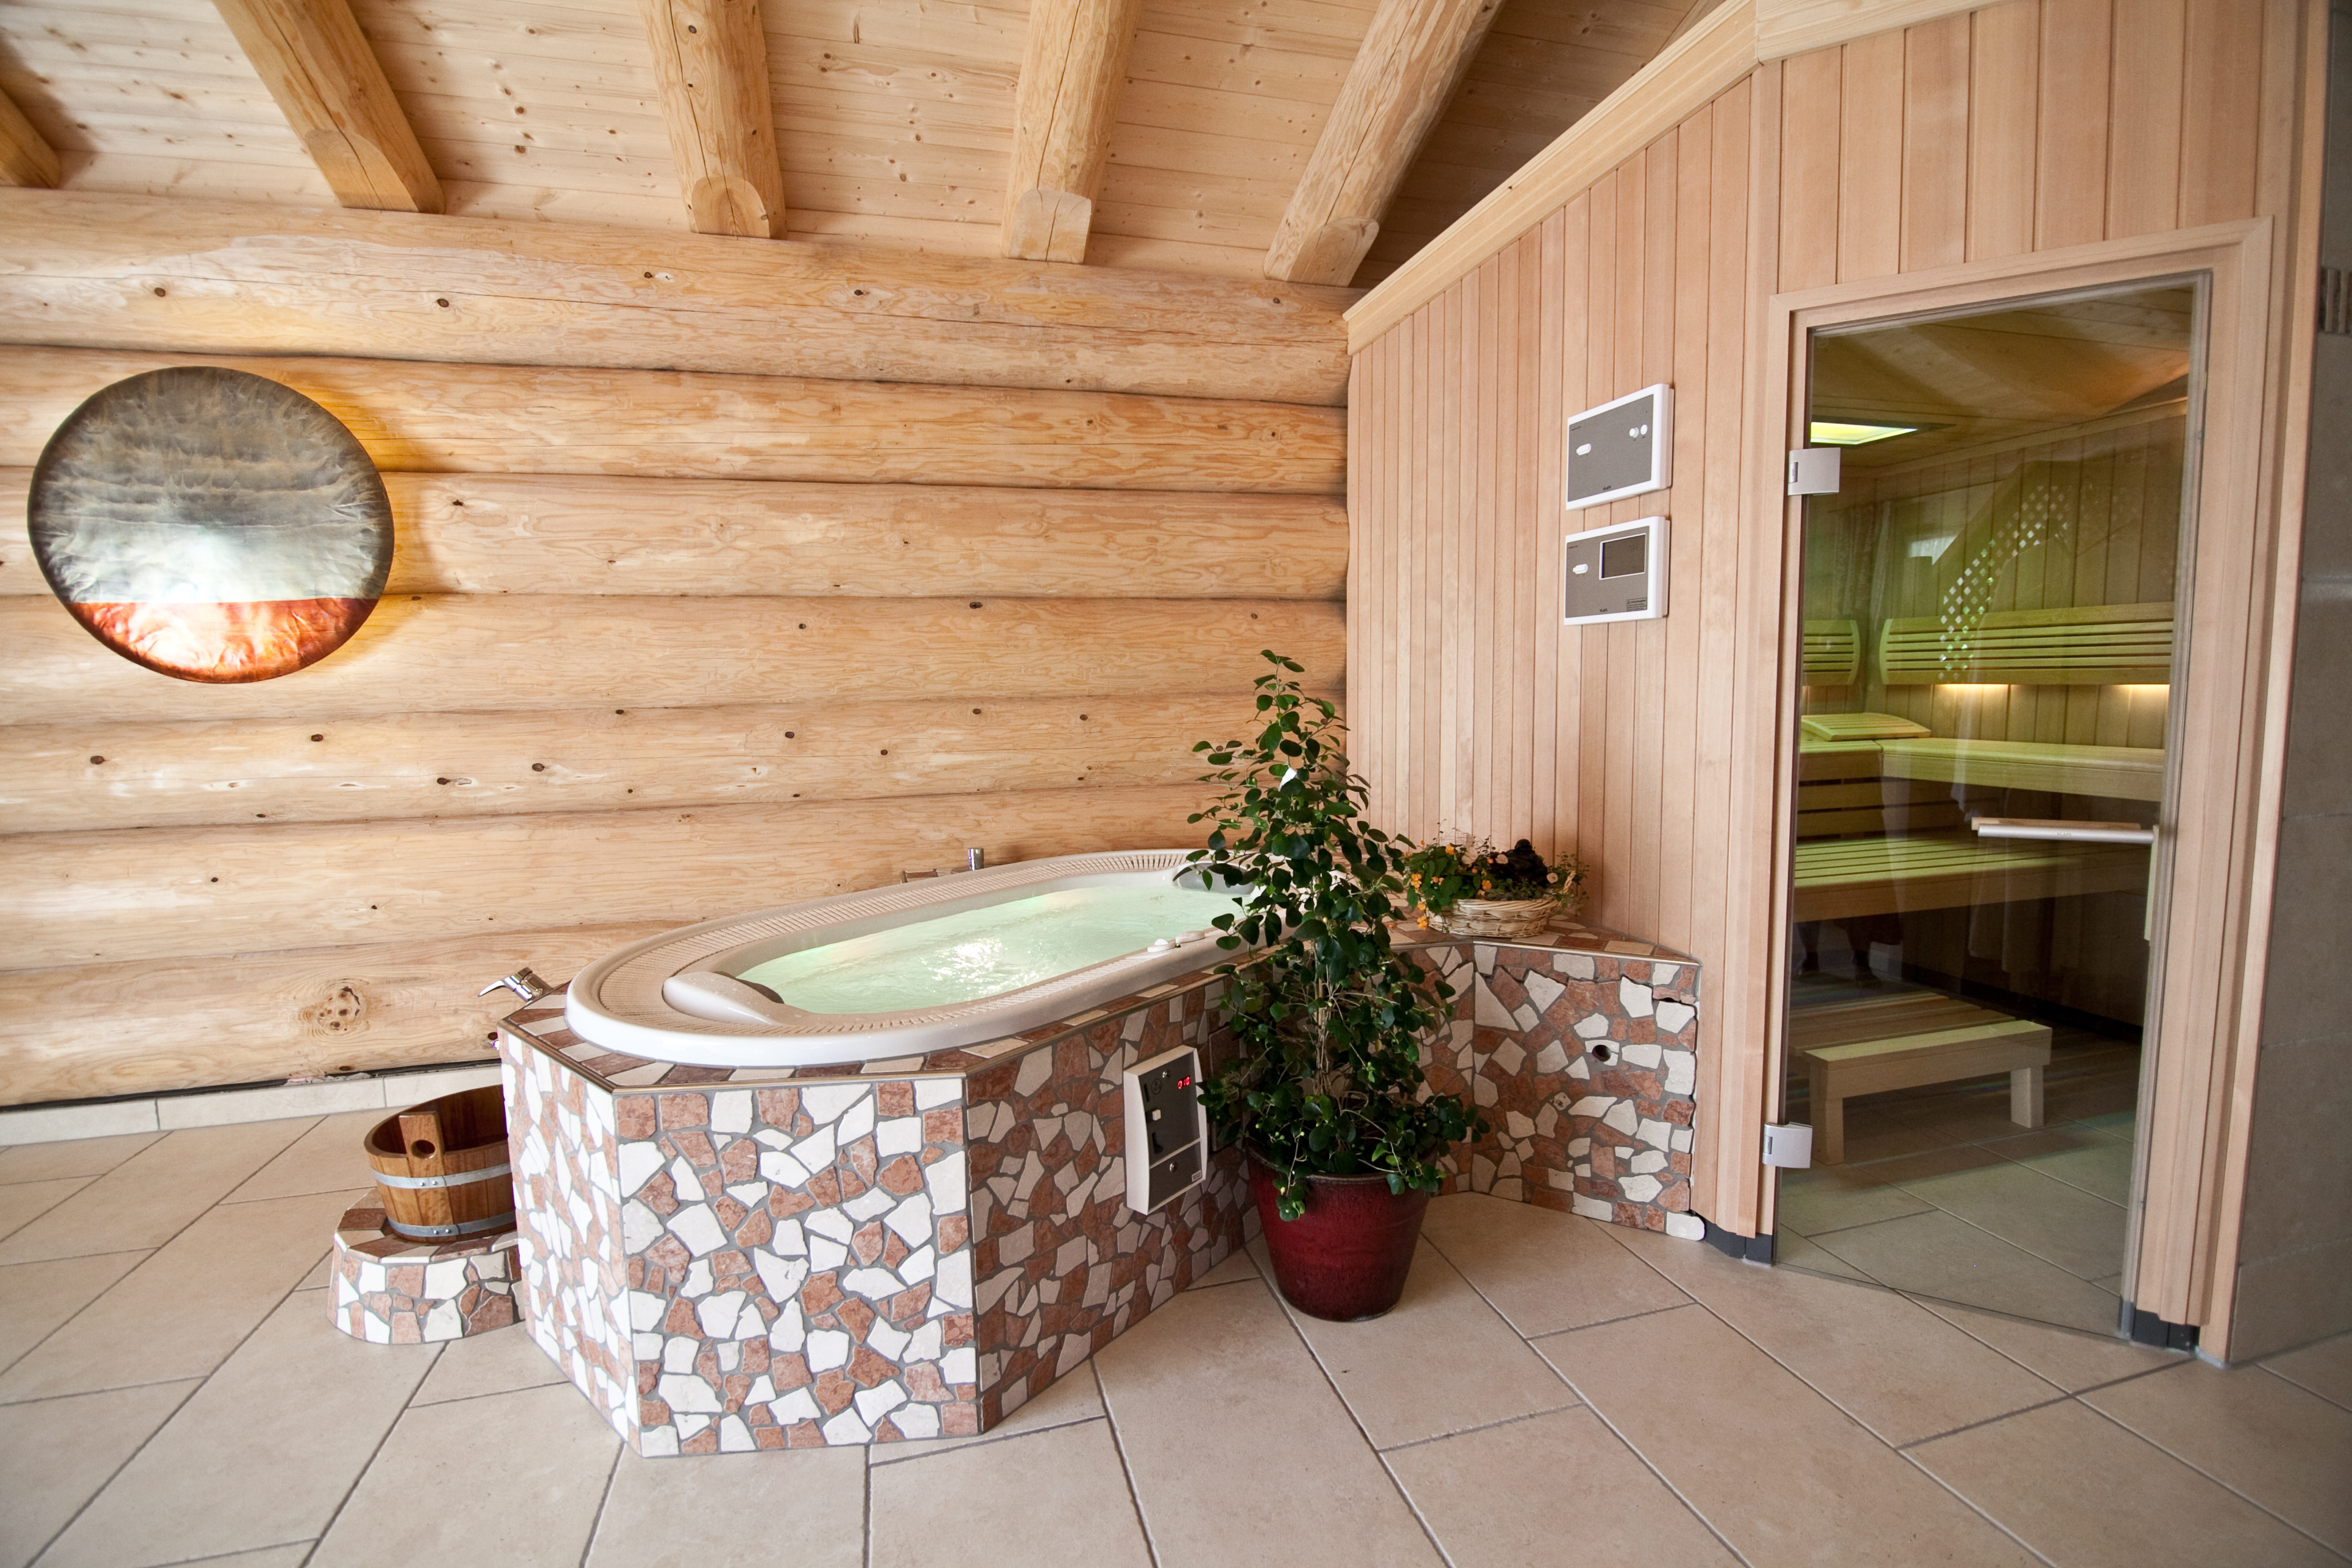 Sauna-Wellness-Blockhaus